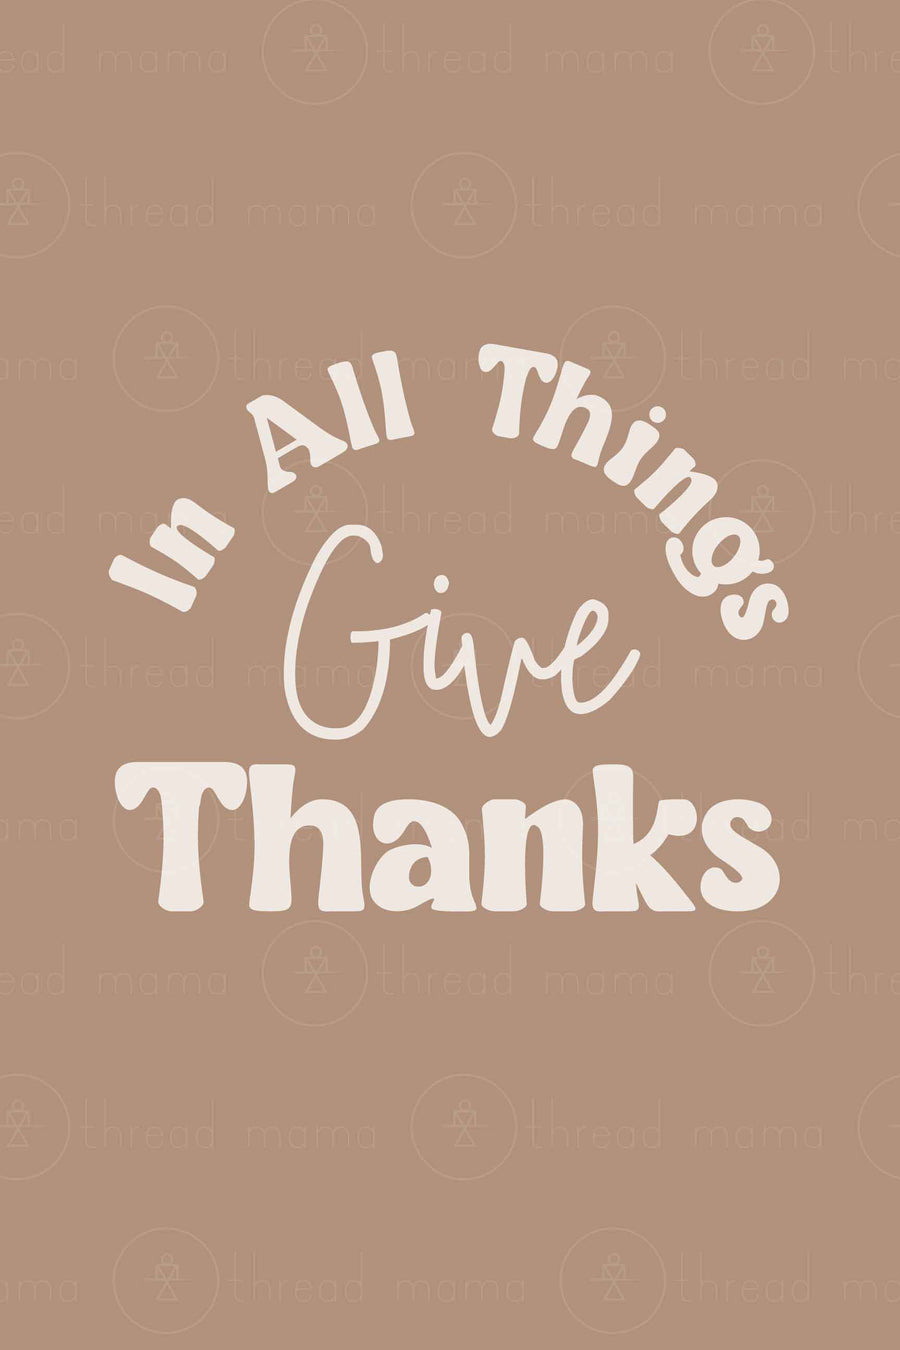 In All Things Give Thanks (Option 2)